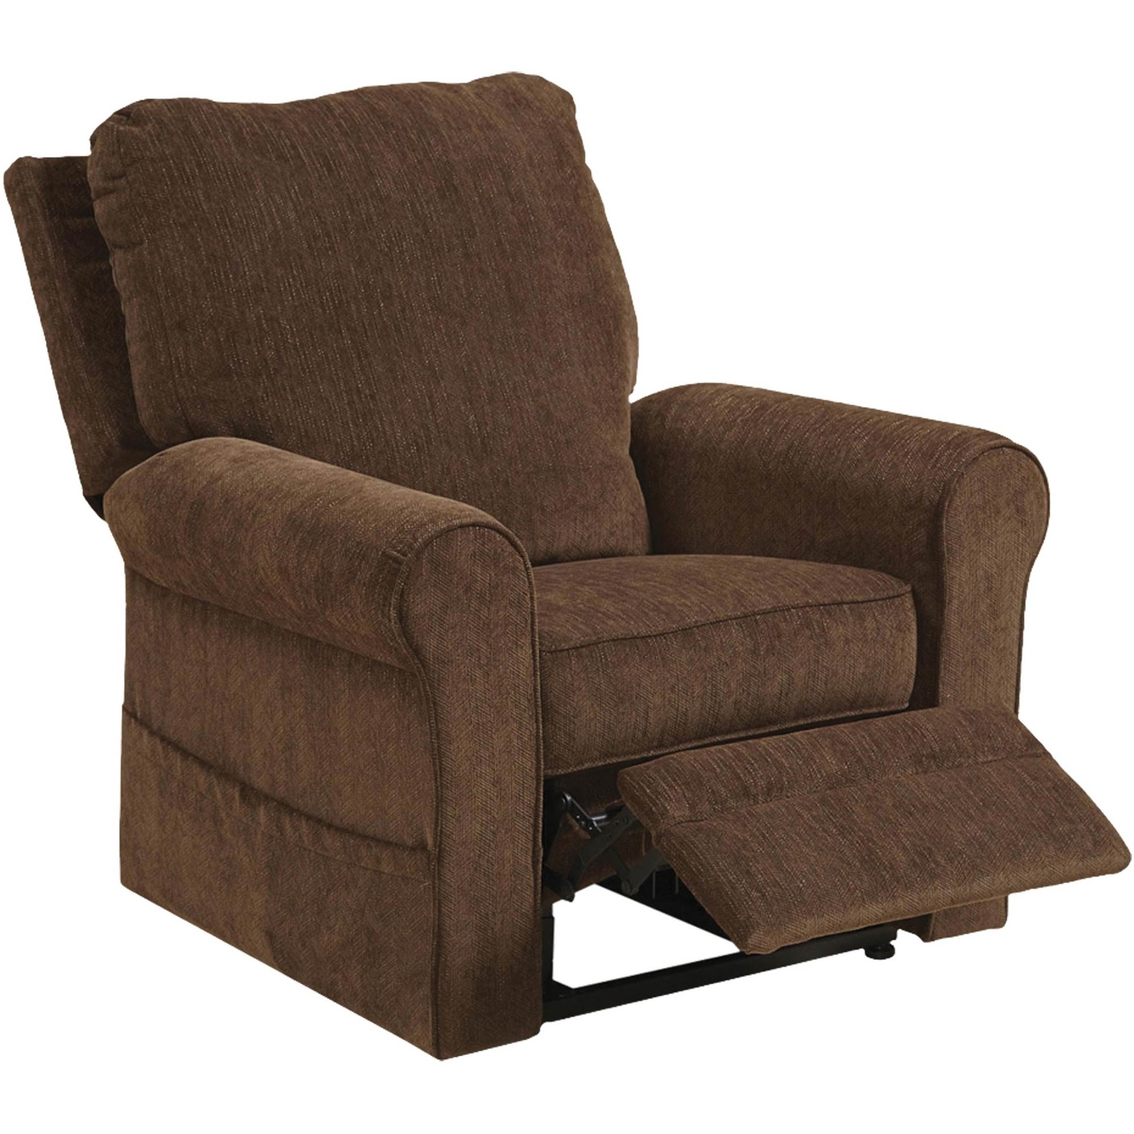 Catnapper Lift Chairs Catnapper Edwards Power Lift Recliner Chairs And Recliners